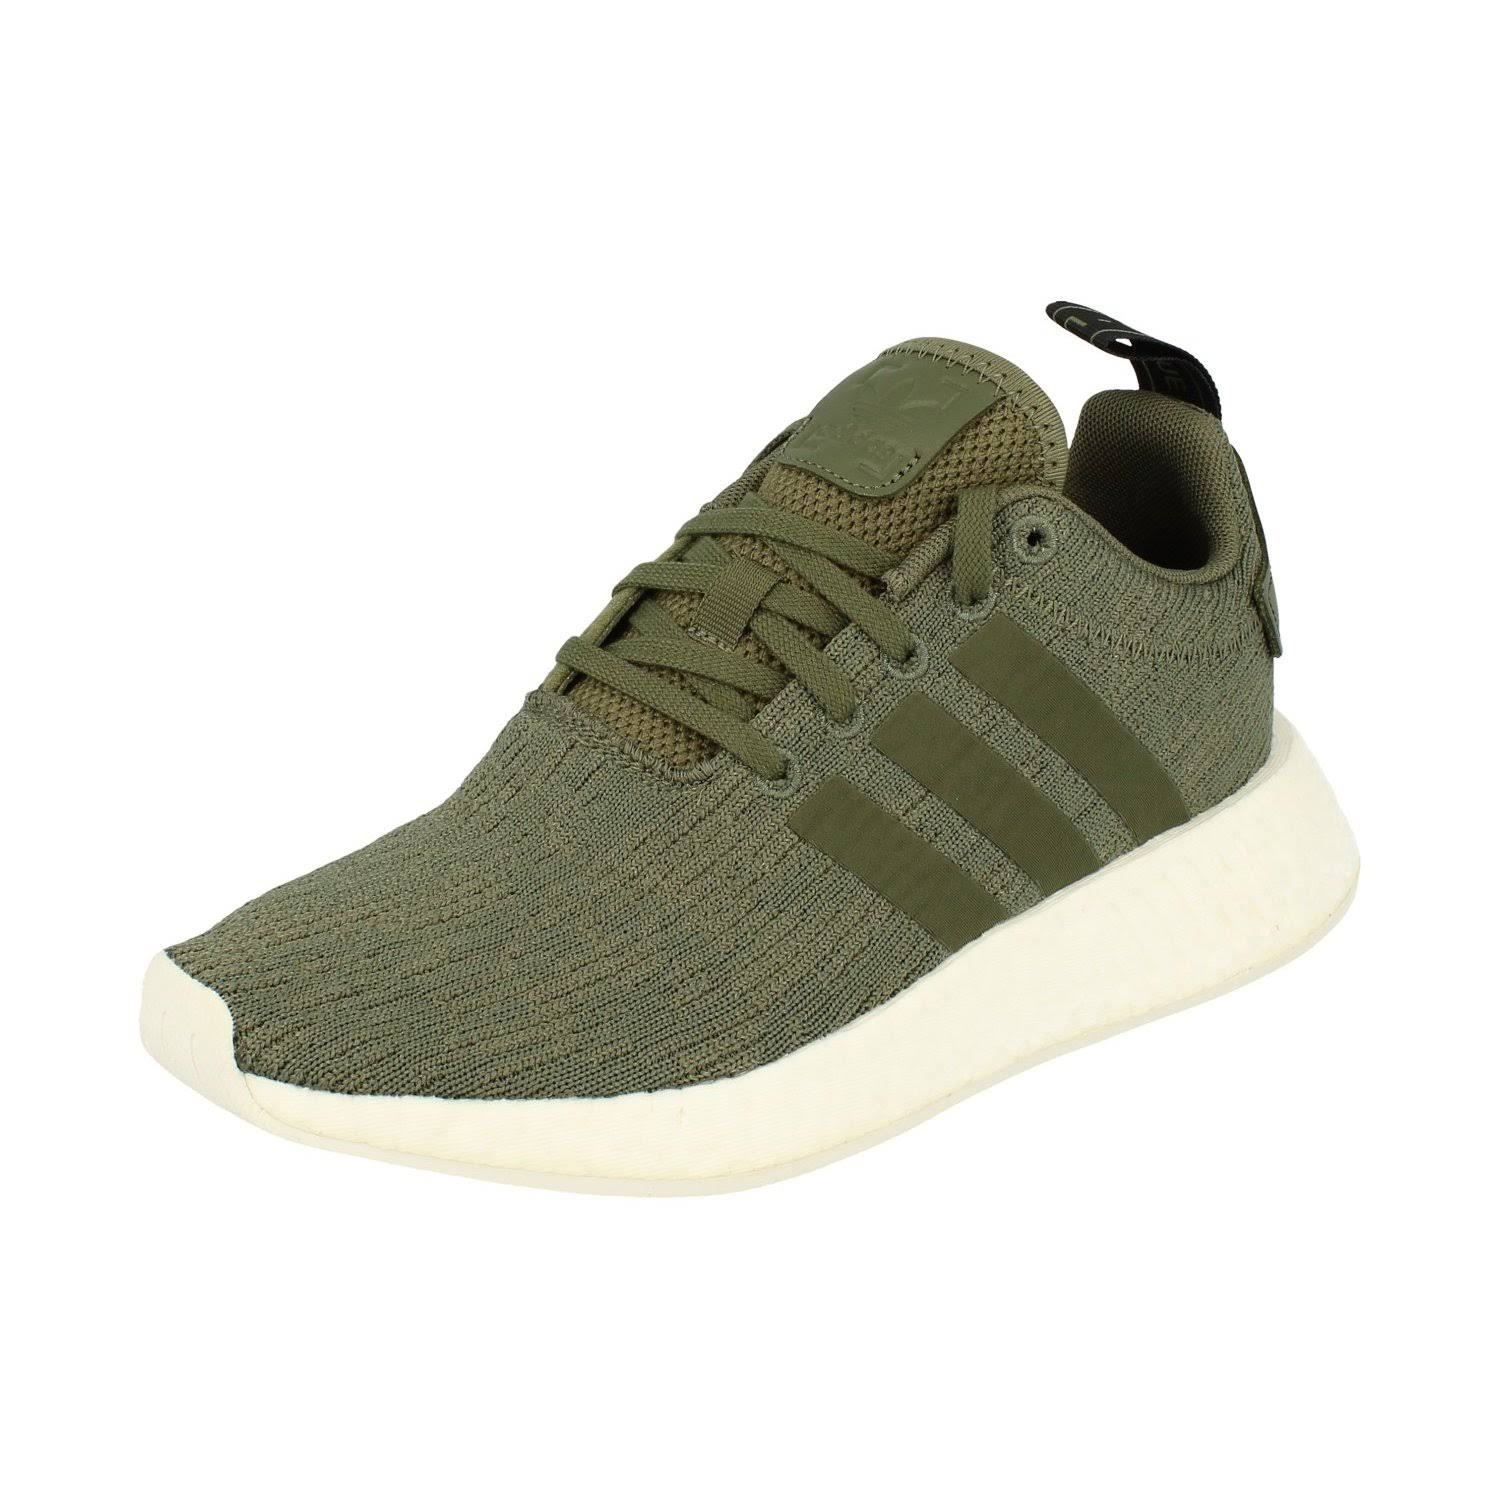 (8 (Adults')) Adidas Originals Nmd_R2 Womens Running Trainers Sneakers